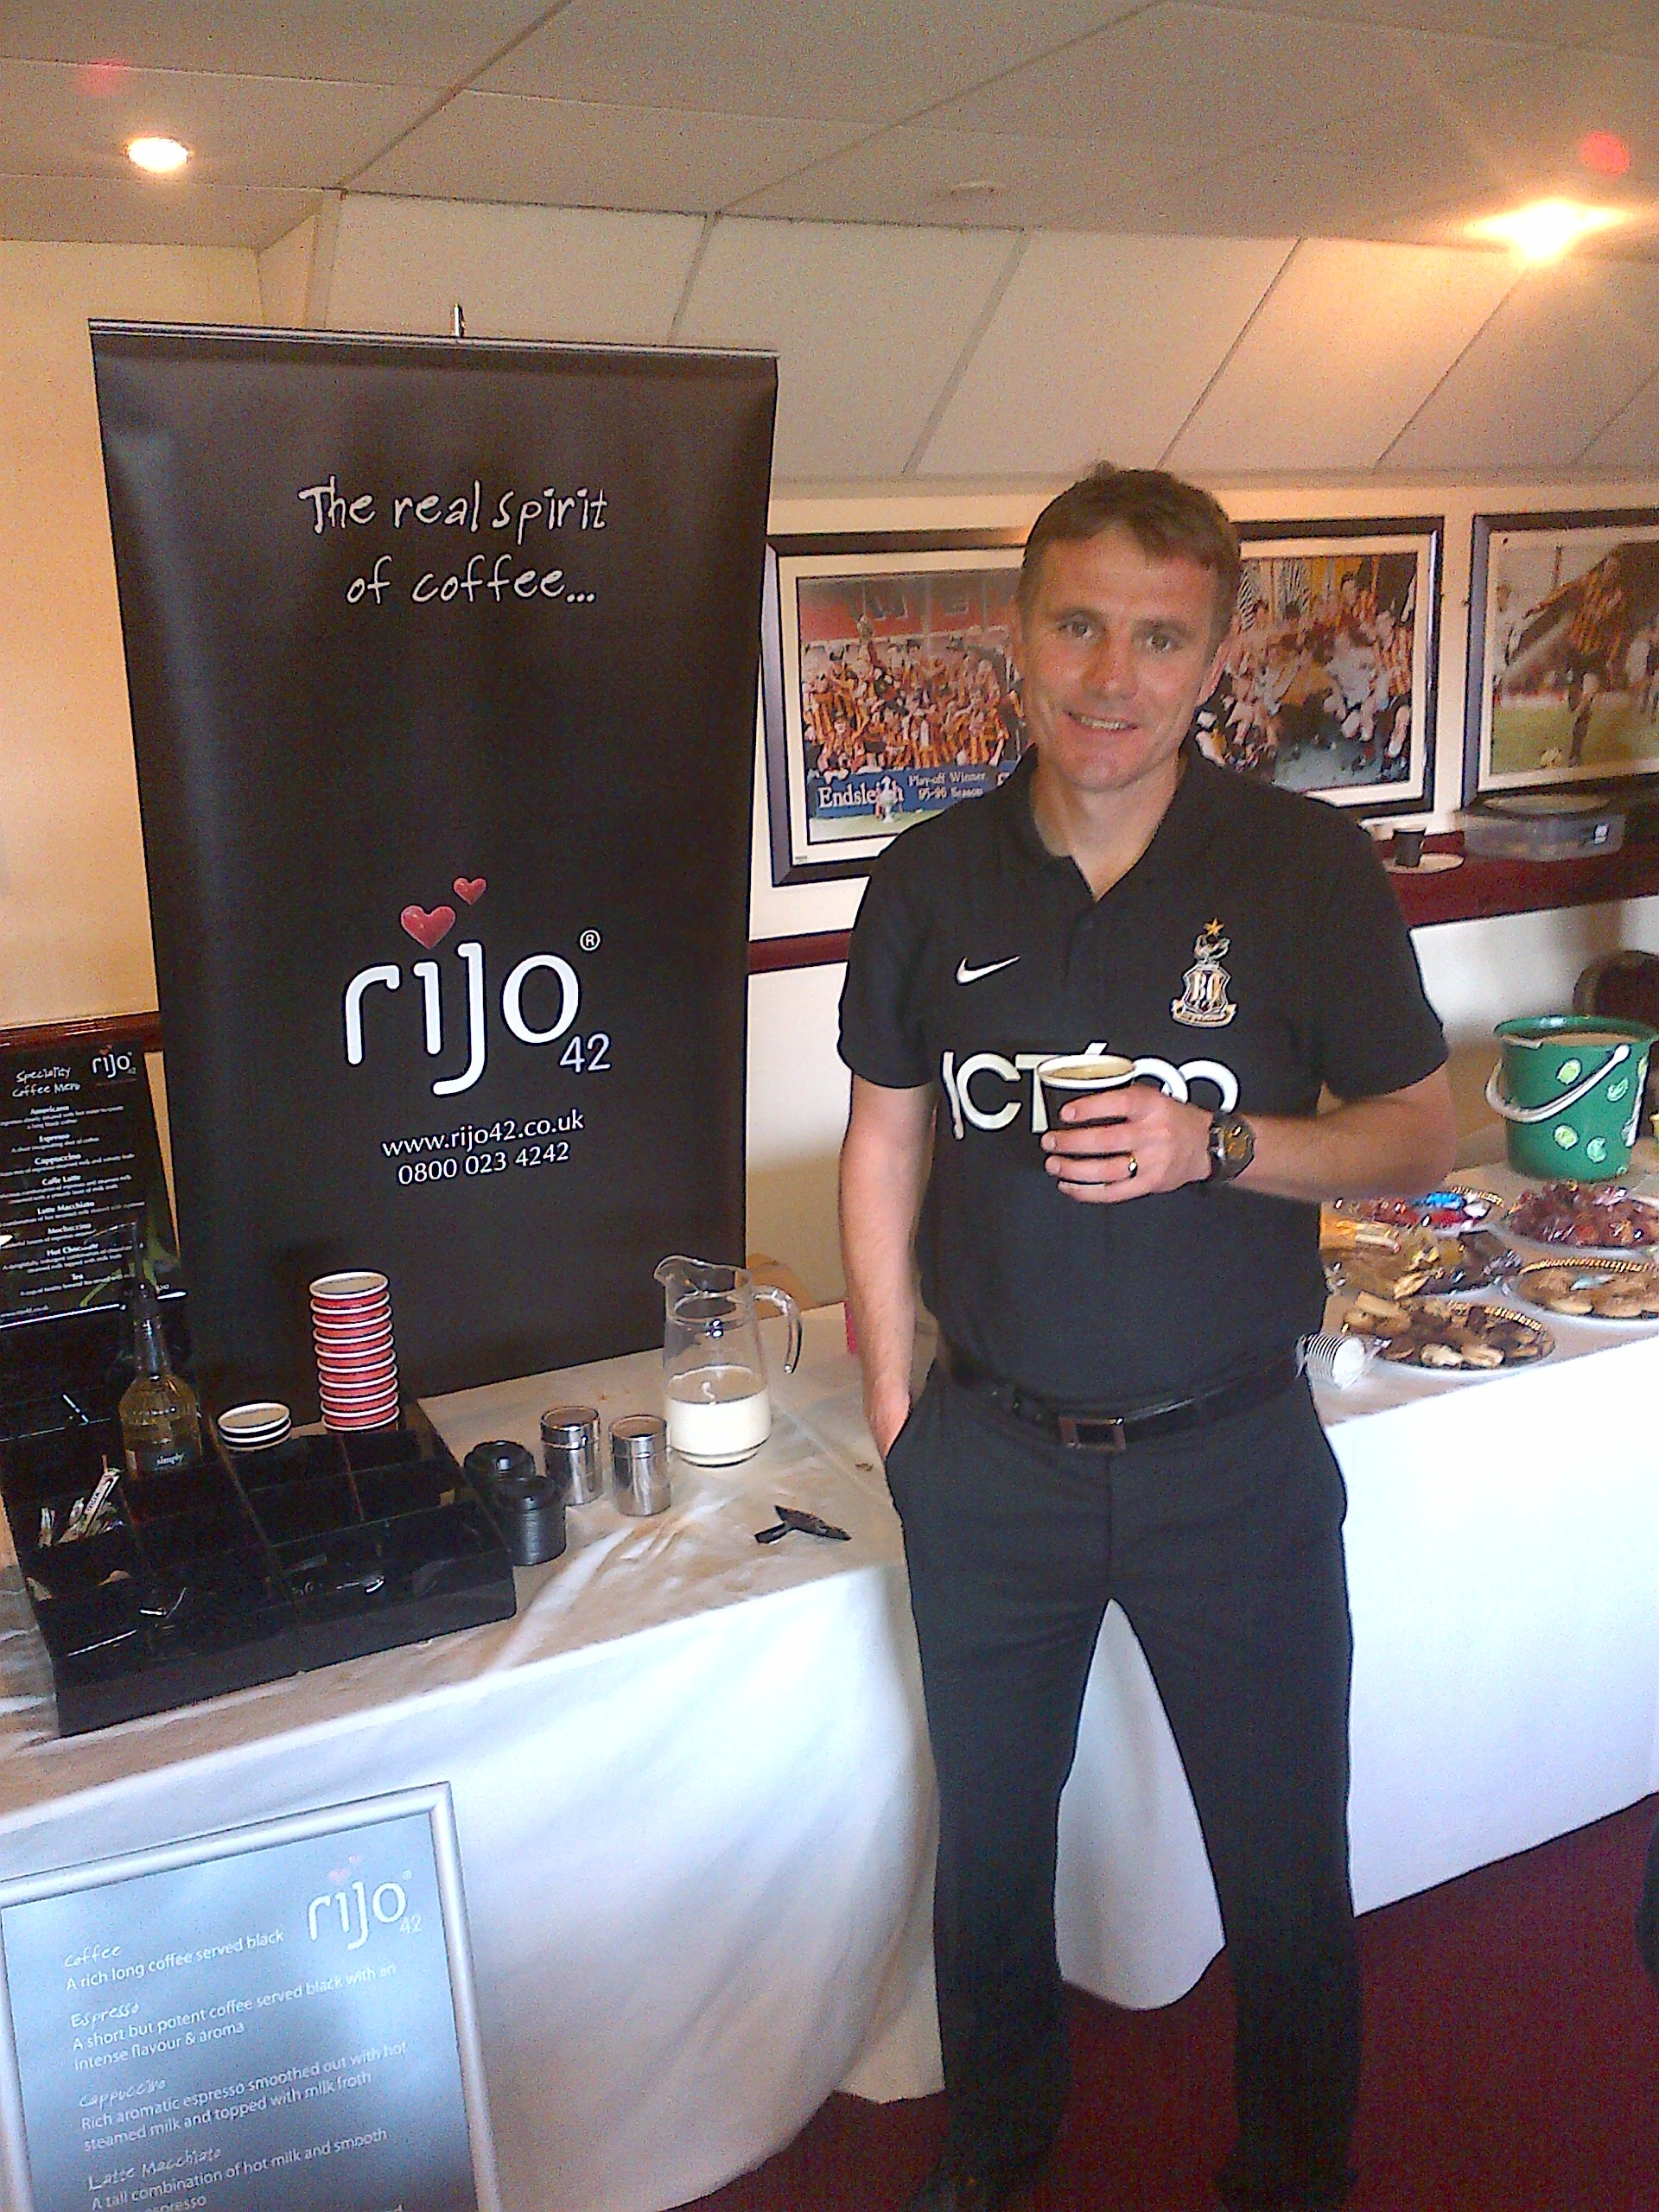 Bradford City Boss Phil Parkinson Enjoying a rijo42 Latte